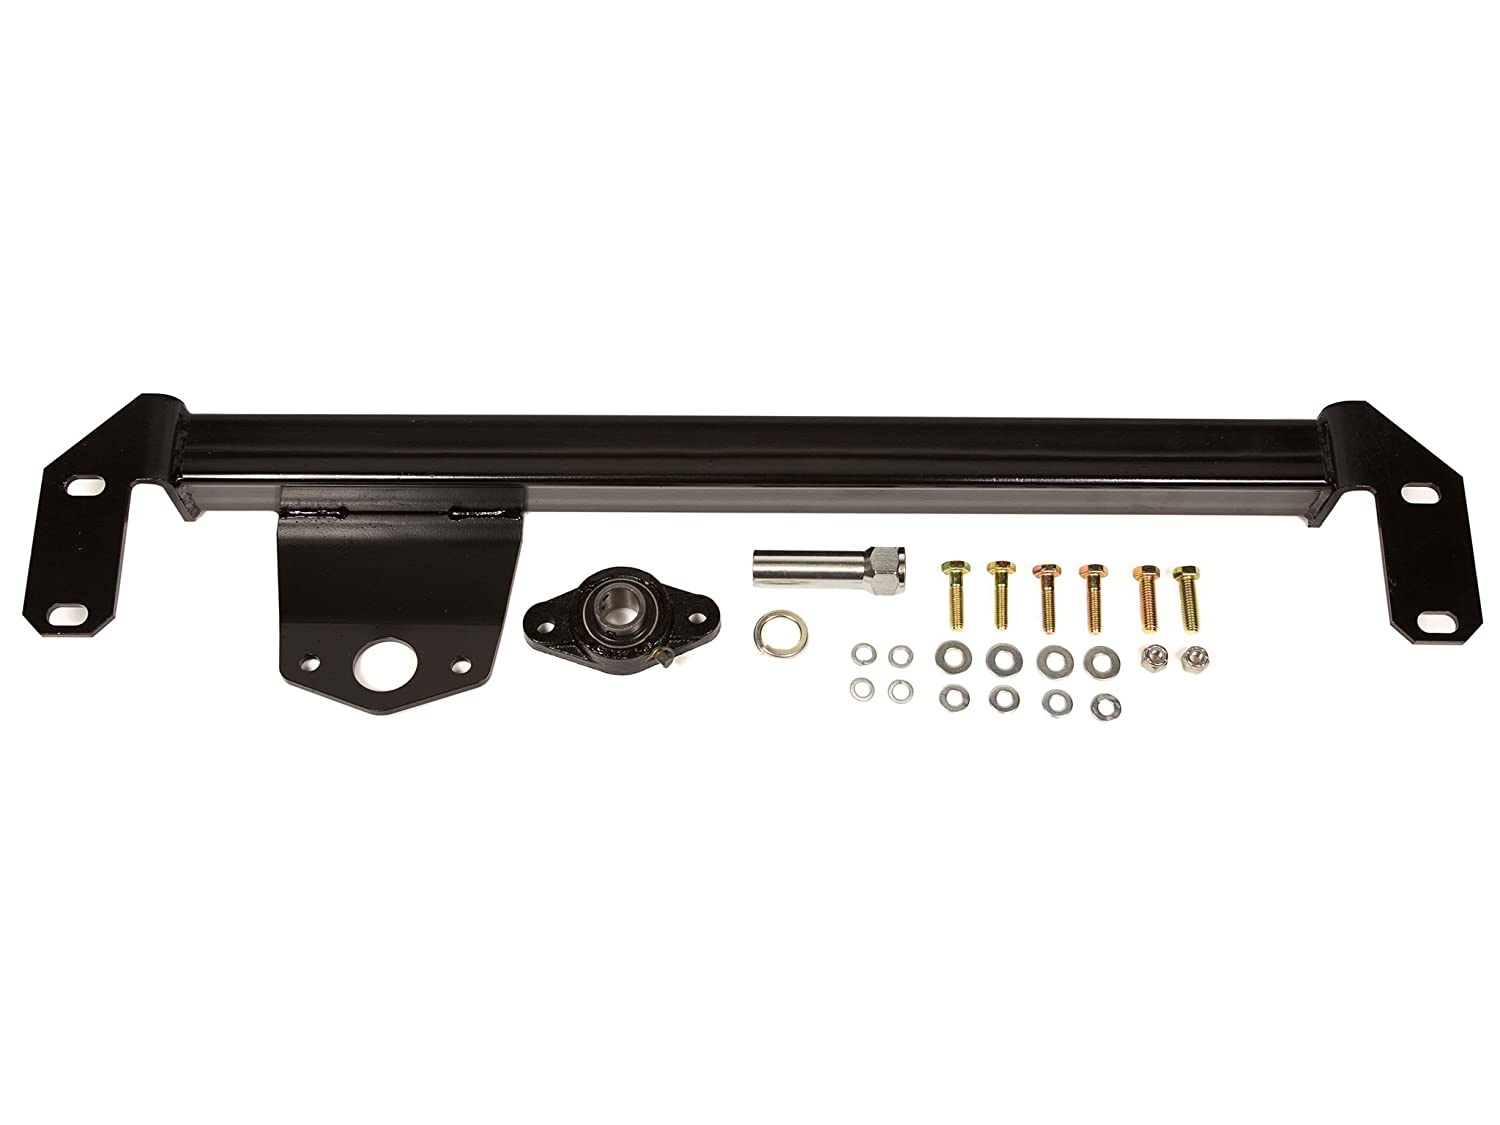 Evergreen SGB-302 Steering Stabilizer Bar 03-08 Dodge Ram 1500 2500 3500 Diesel (4x4 / 4WD only) Evergreen Parts And Components